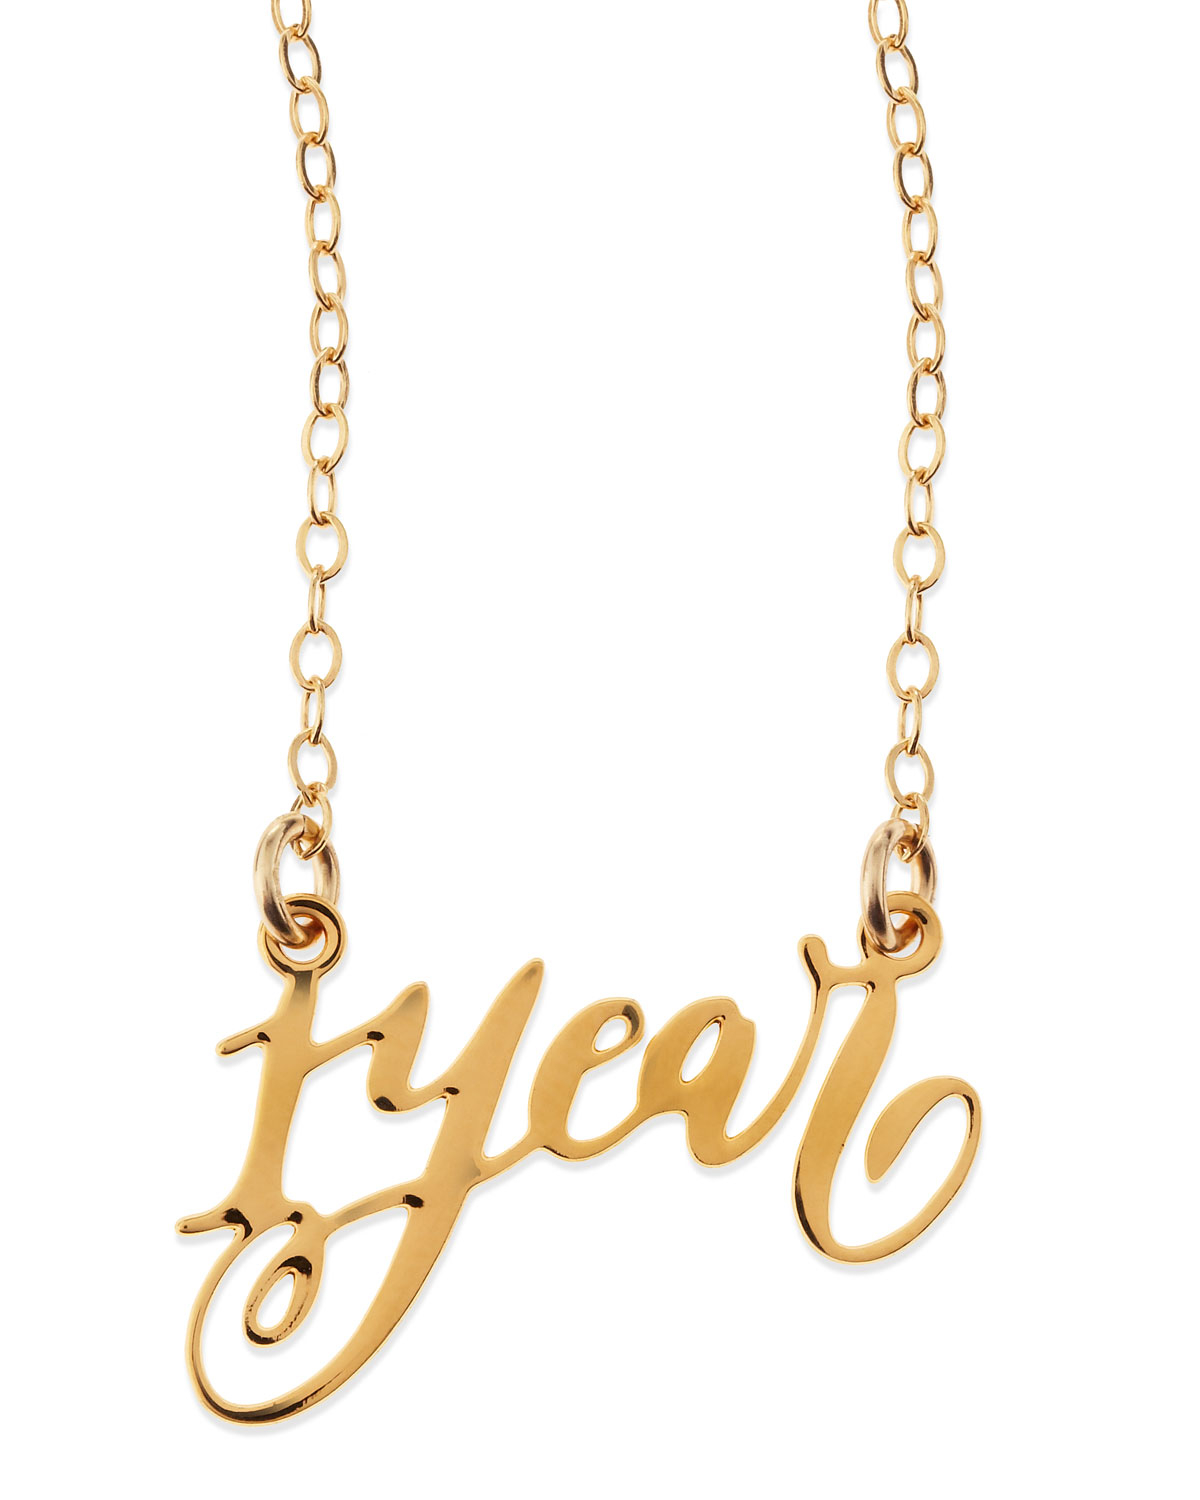 Brevity 1 year anniversary calligraphy necklace in Calligraphy jewelry